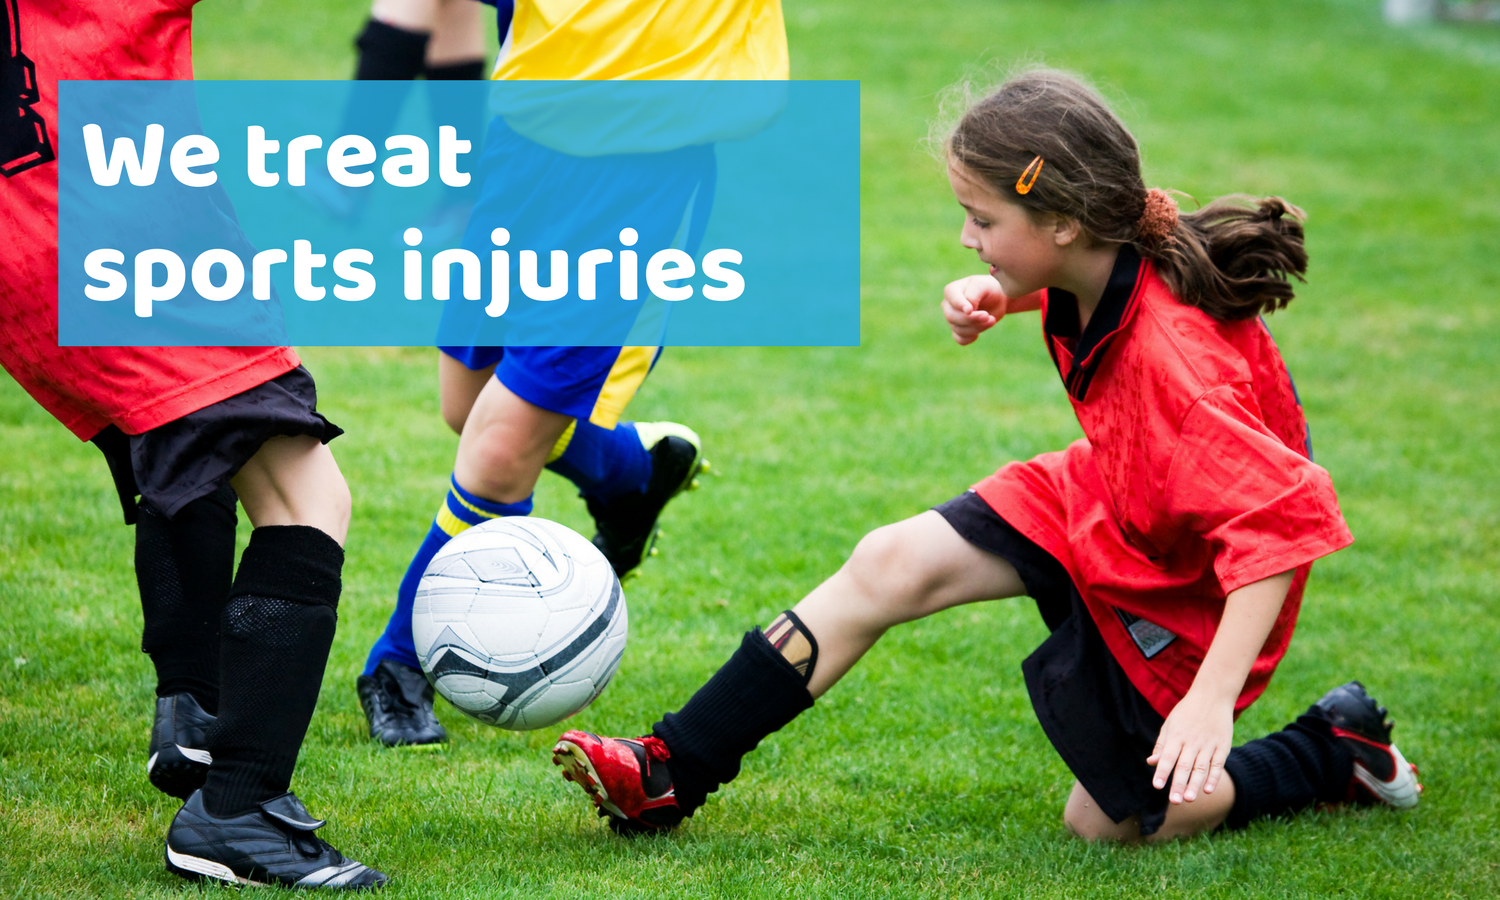 We treat sports injuries (1).png